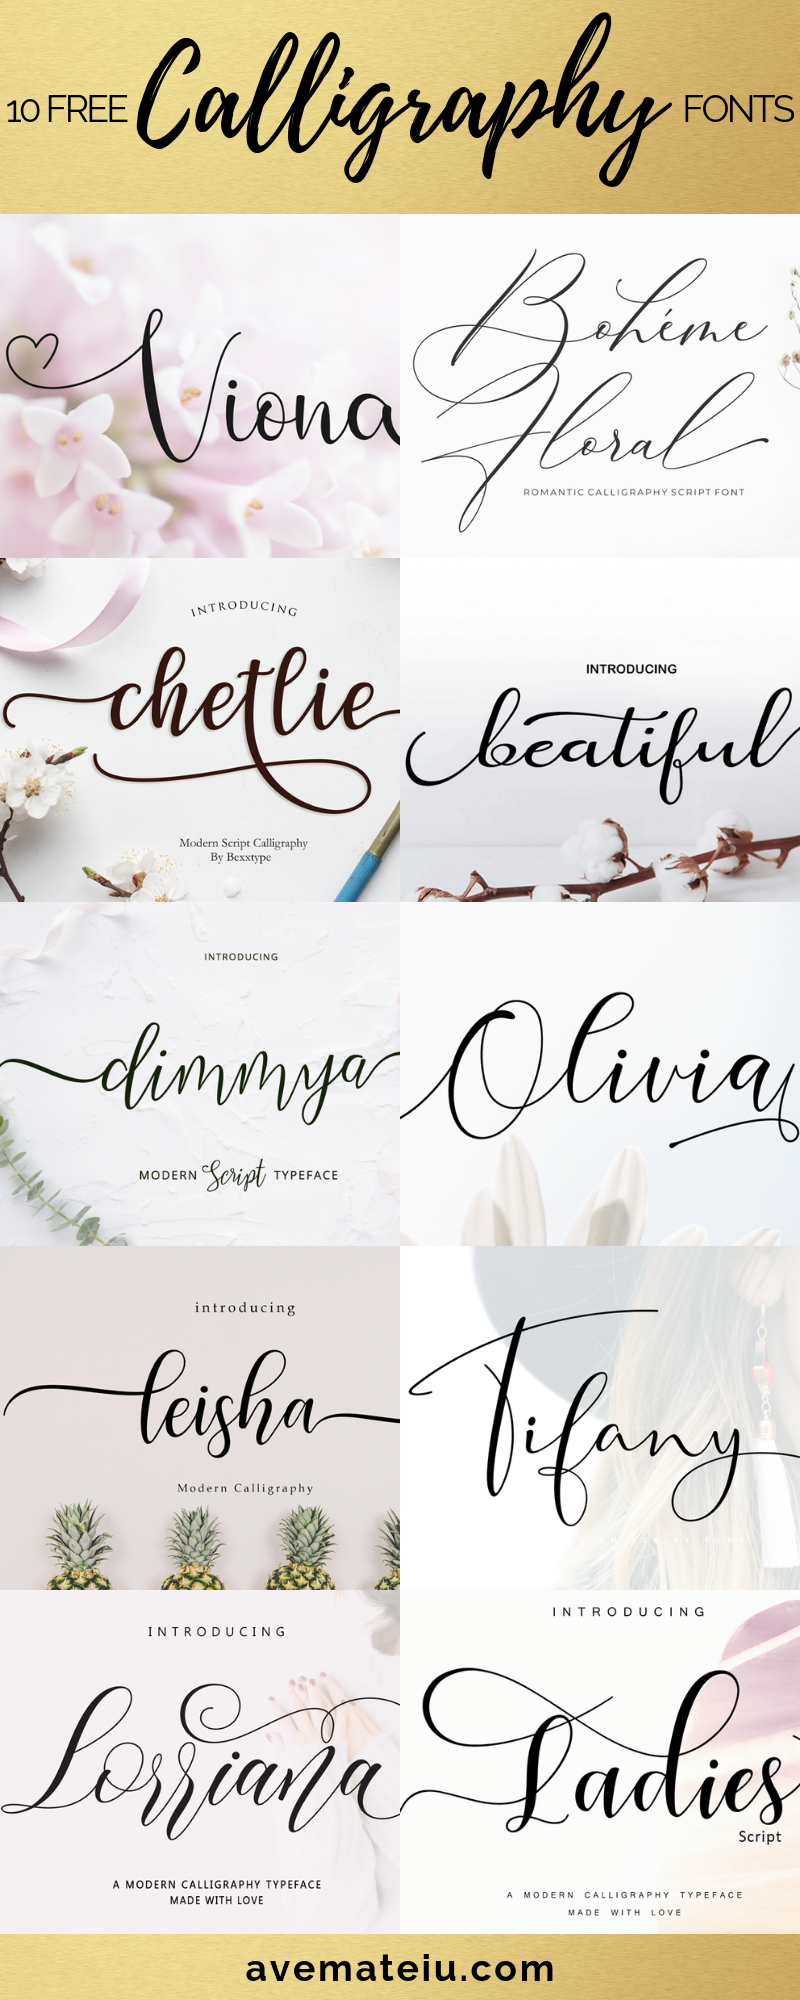 10 New FREE Beautiful Calligraphy Fonts Part 3 Tattoo